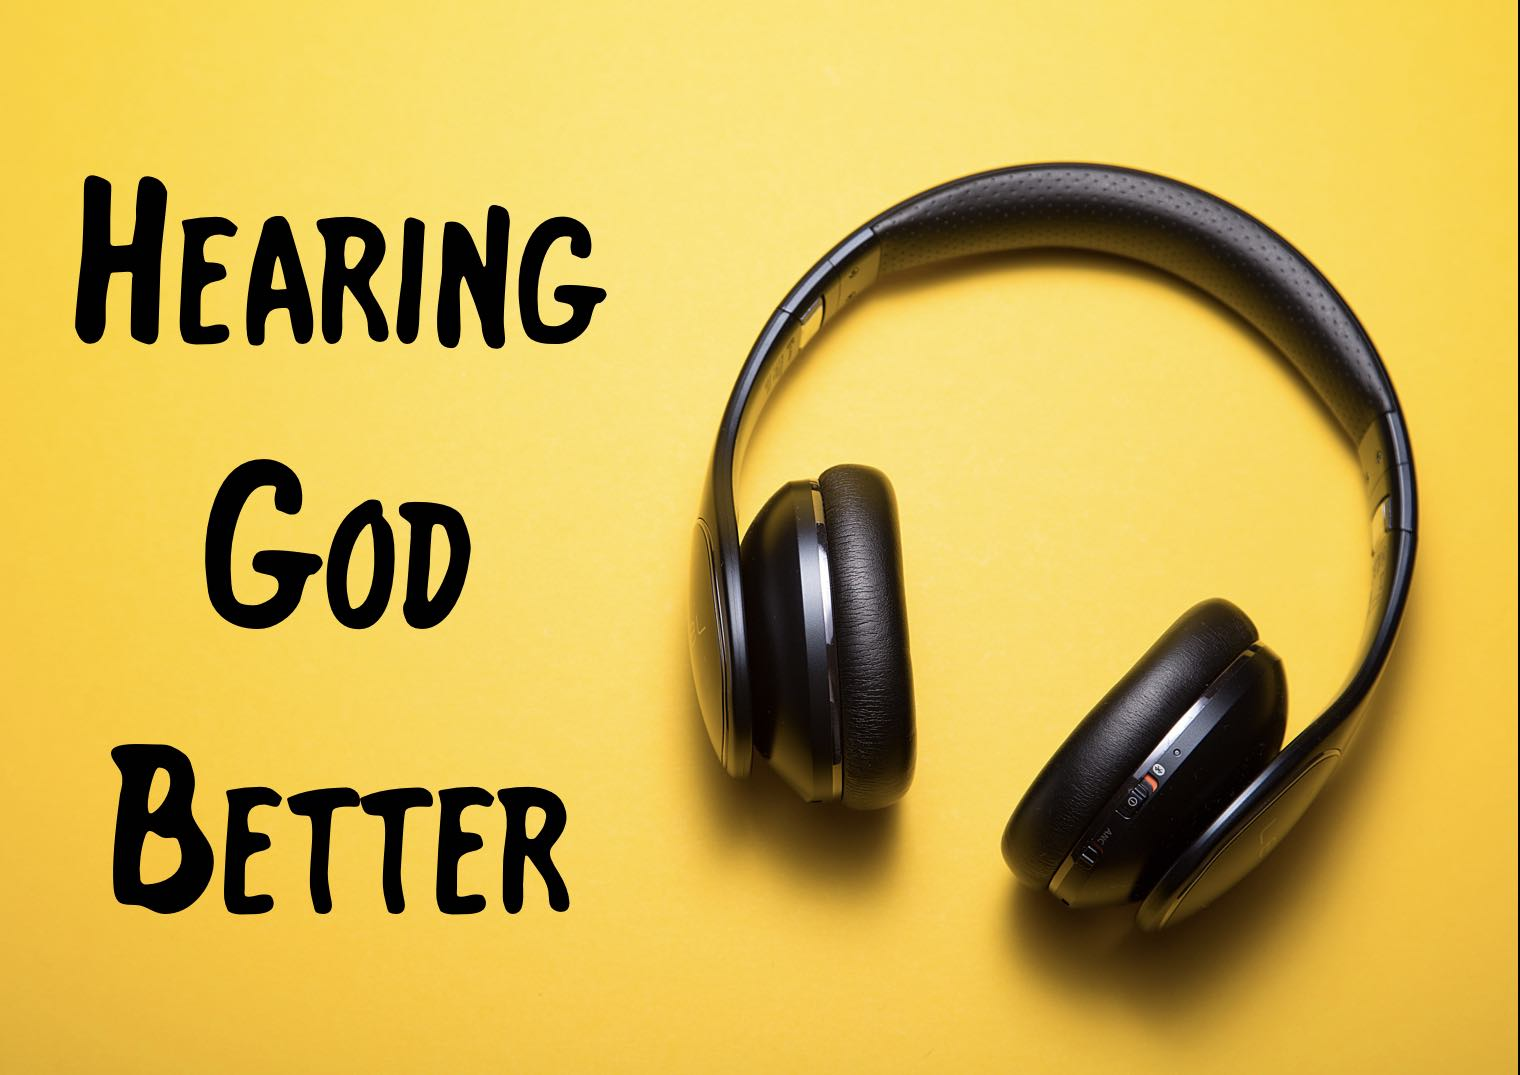 hearing god better small